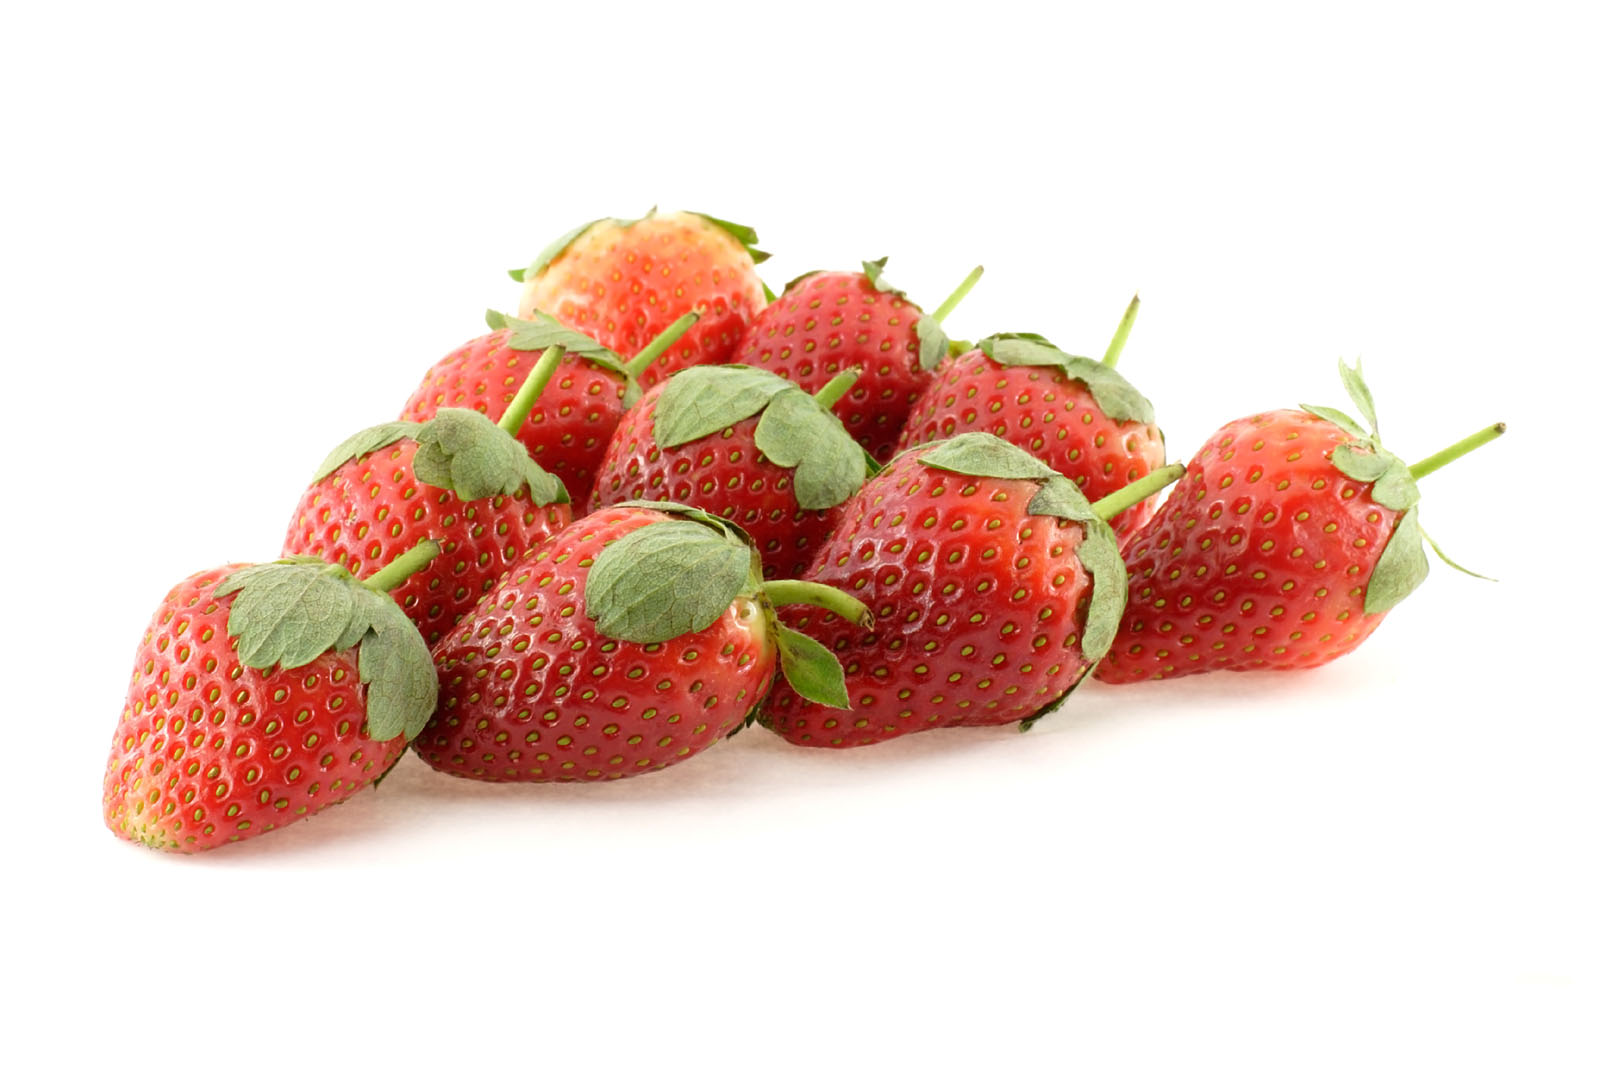 Strawberry close-up high-definition 11639